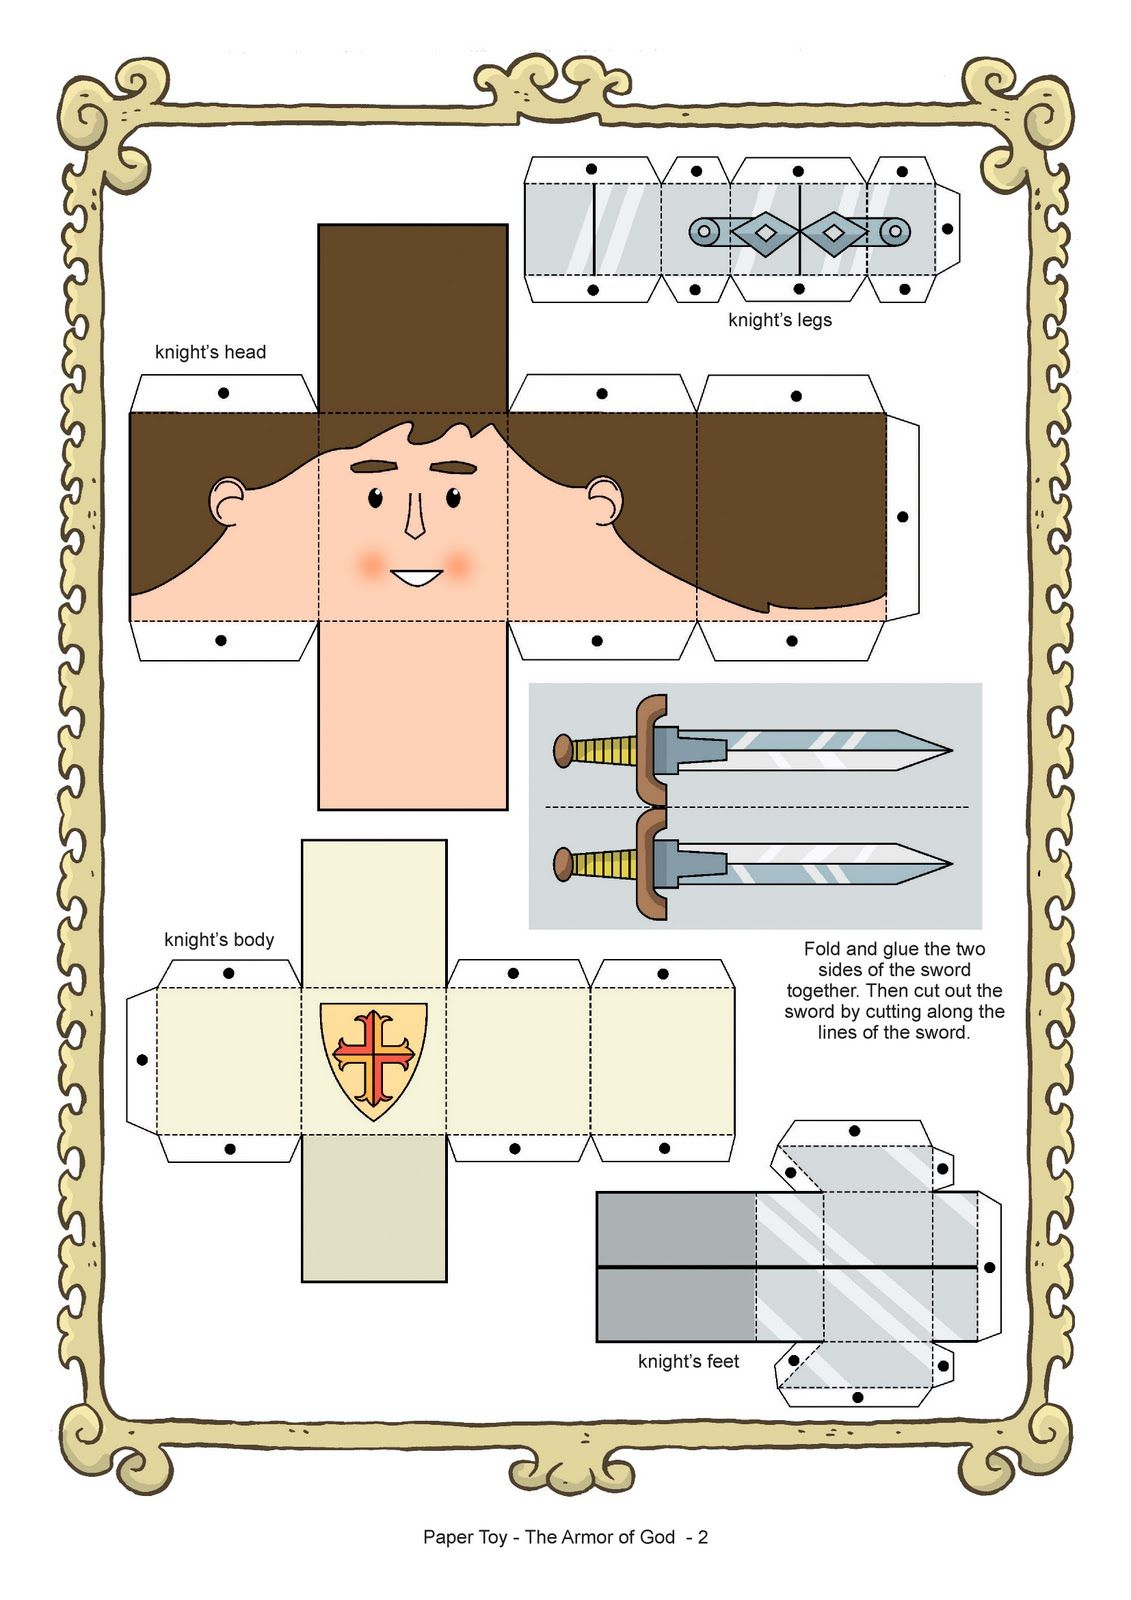 armor of god coloring pages | My Little House: Paper Toy: the ...